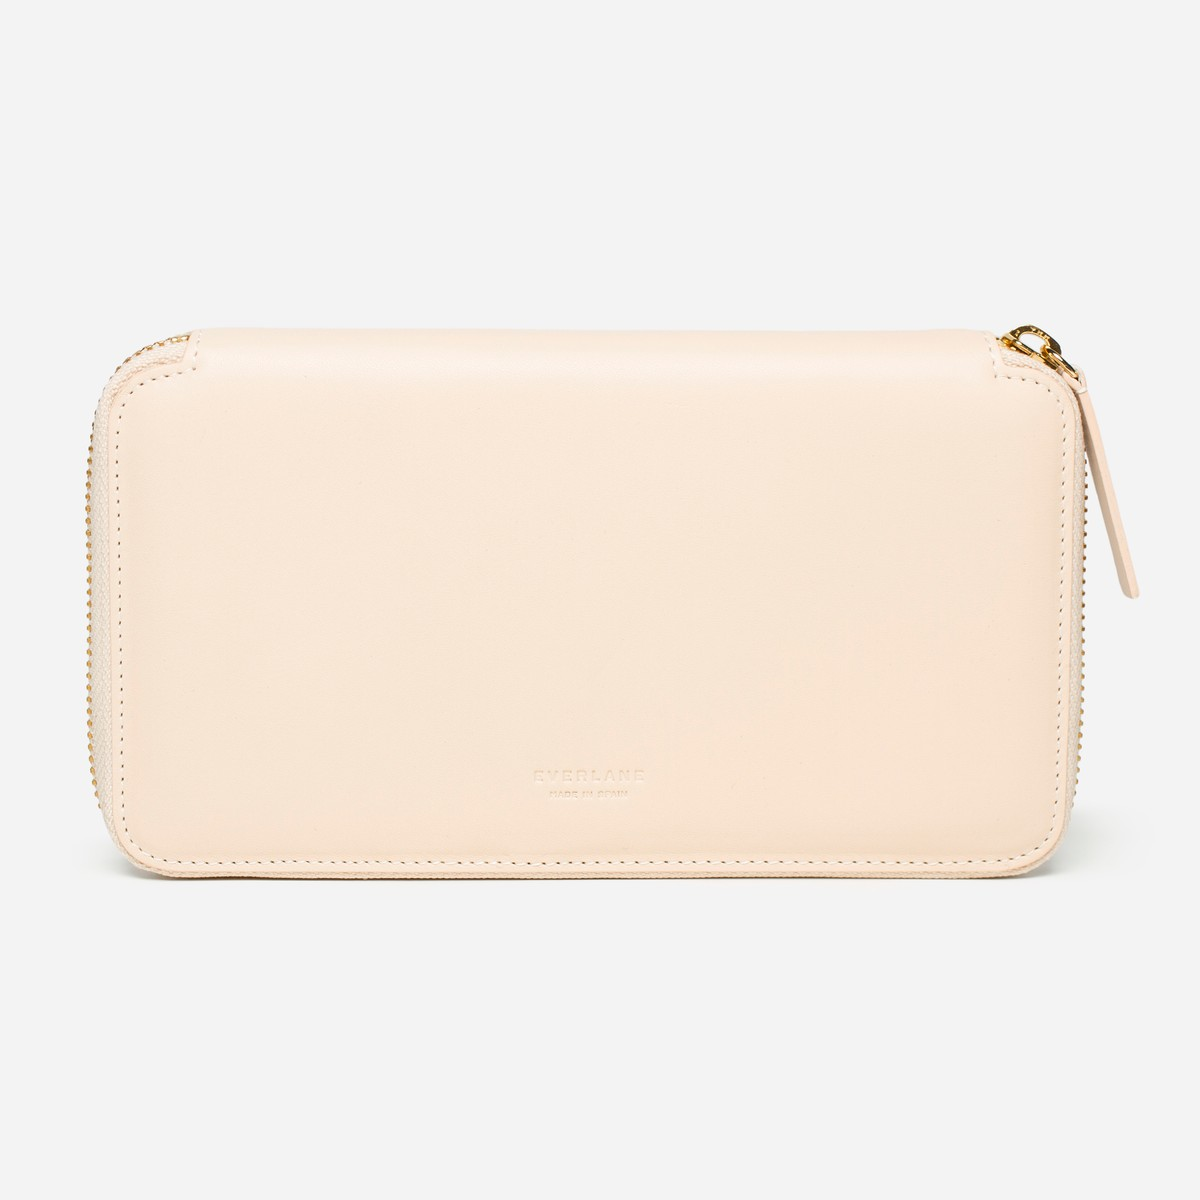 everlane-leather-wallet-1